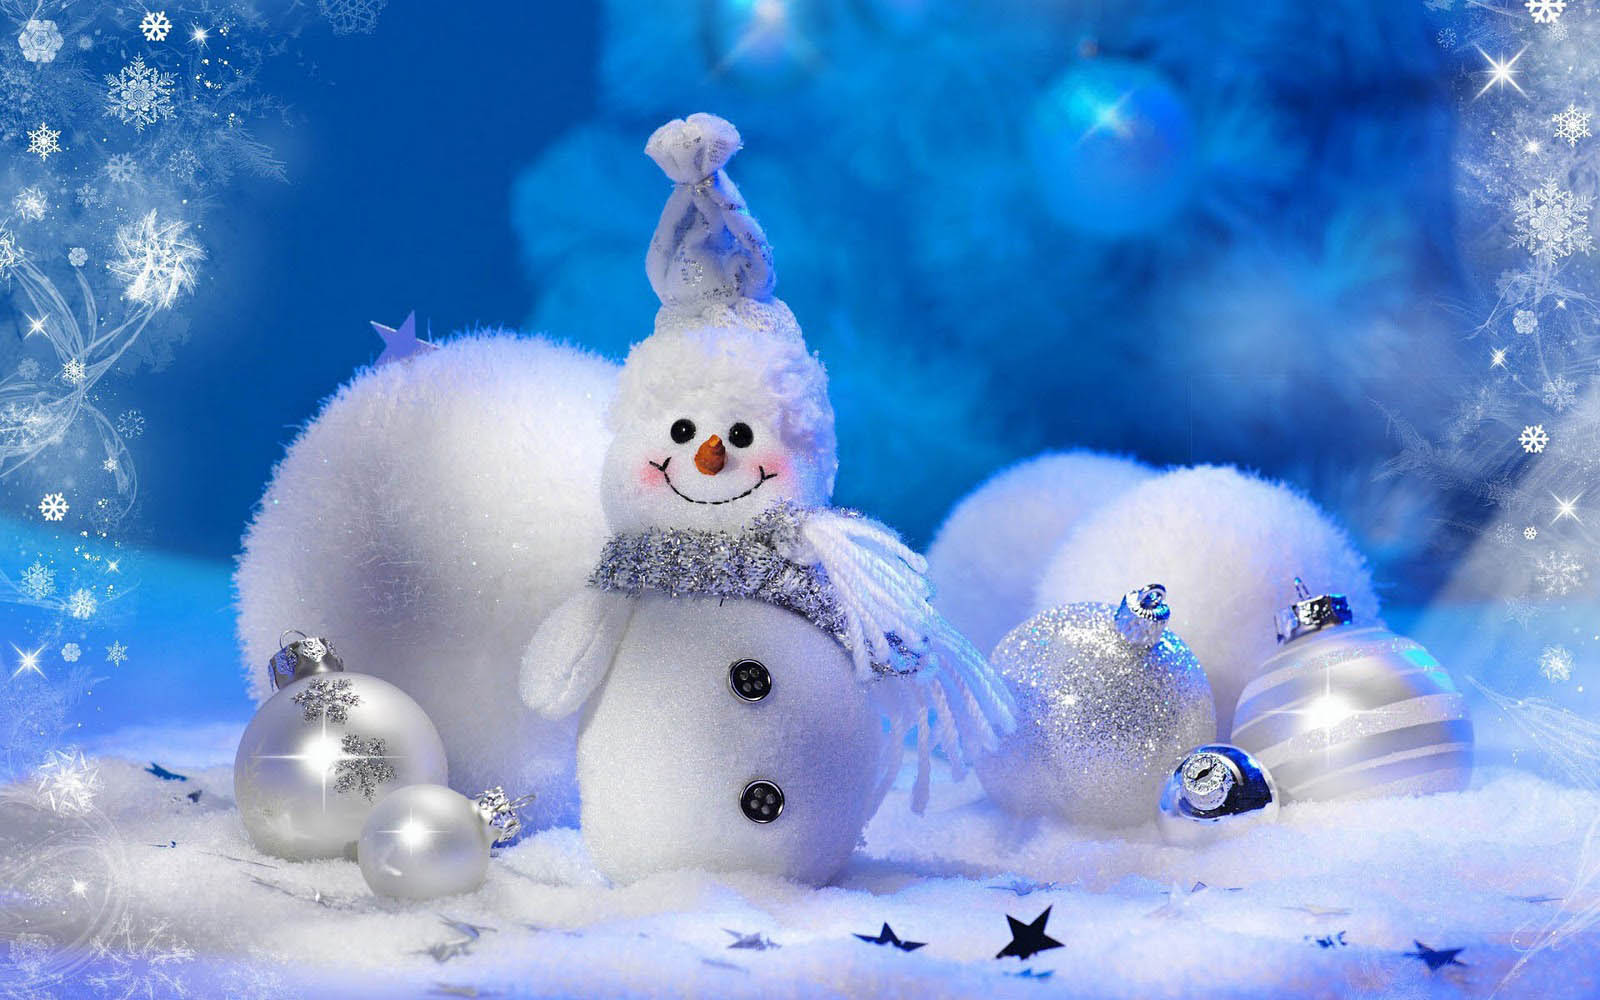 snowman wallpaperswallpapers screensavers 1600x1000